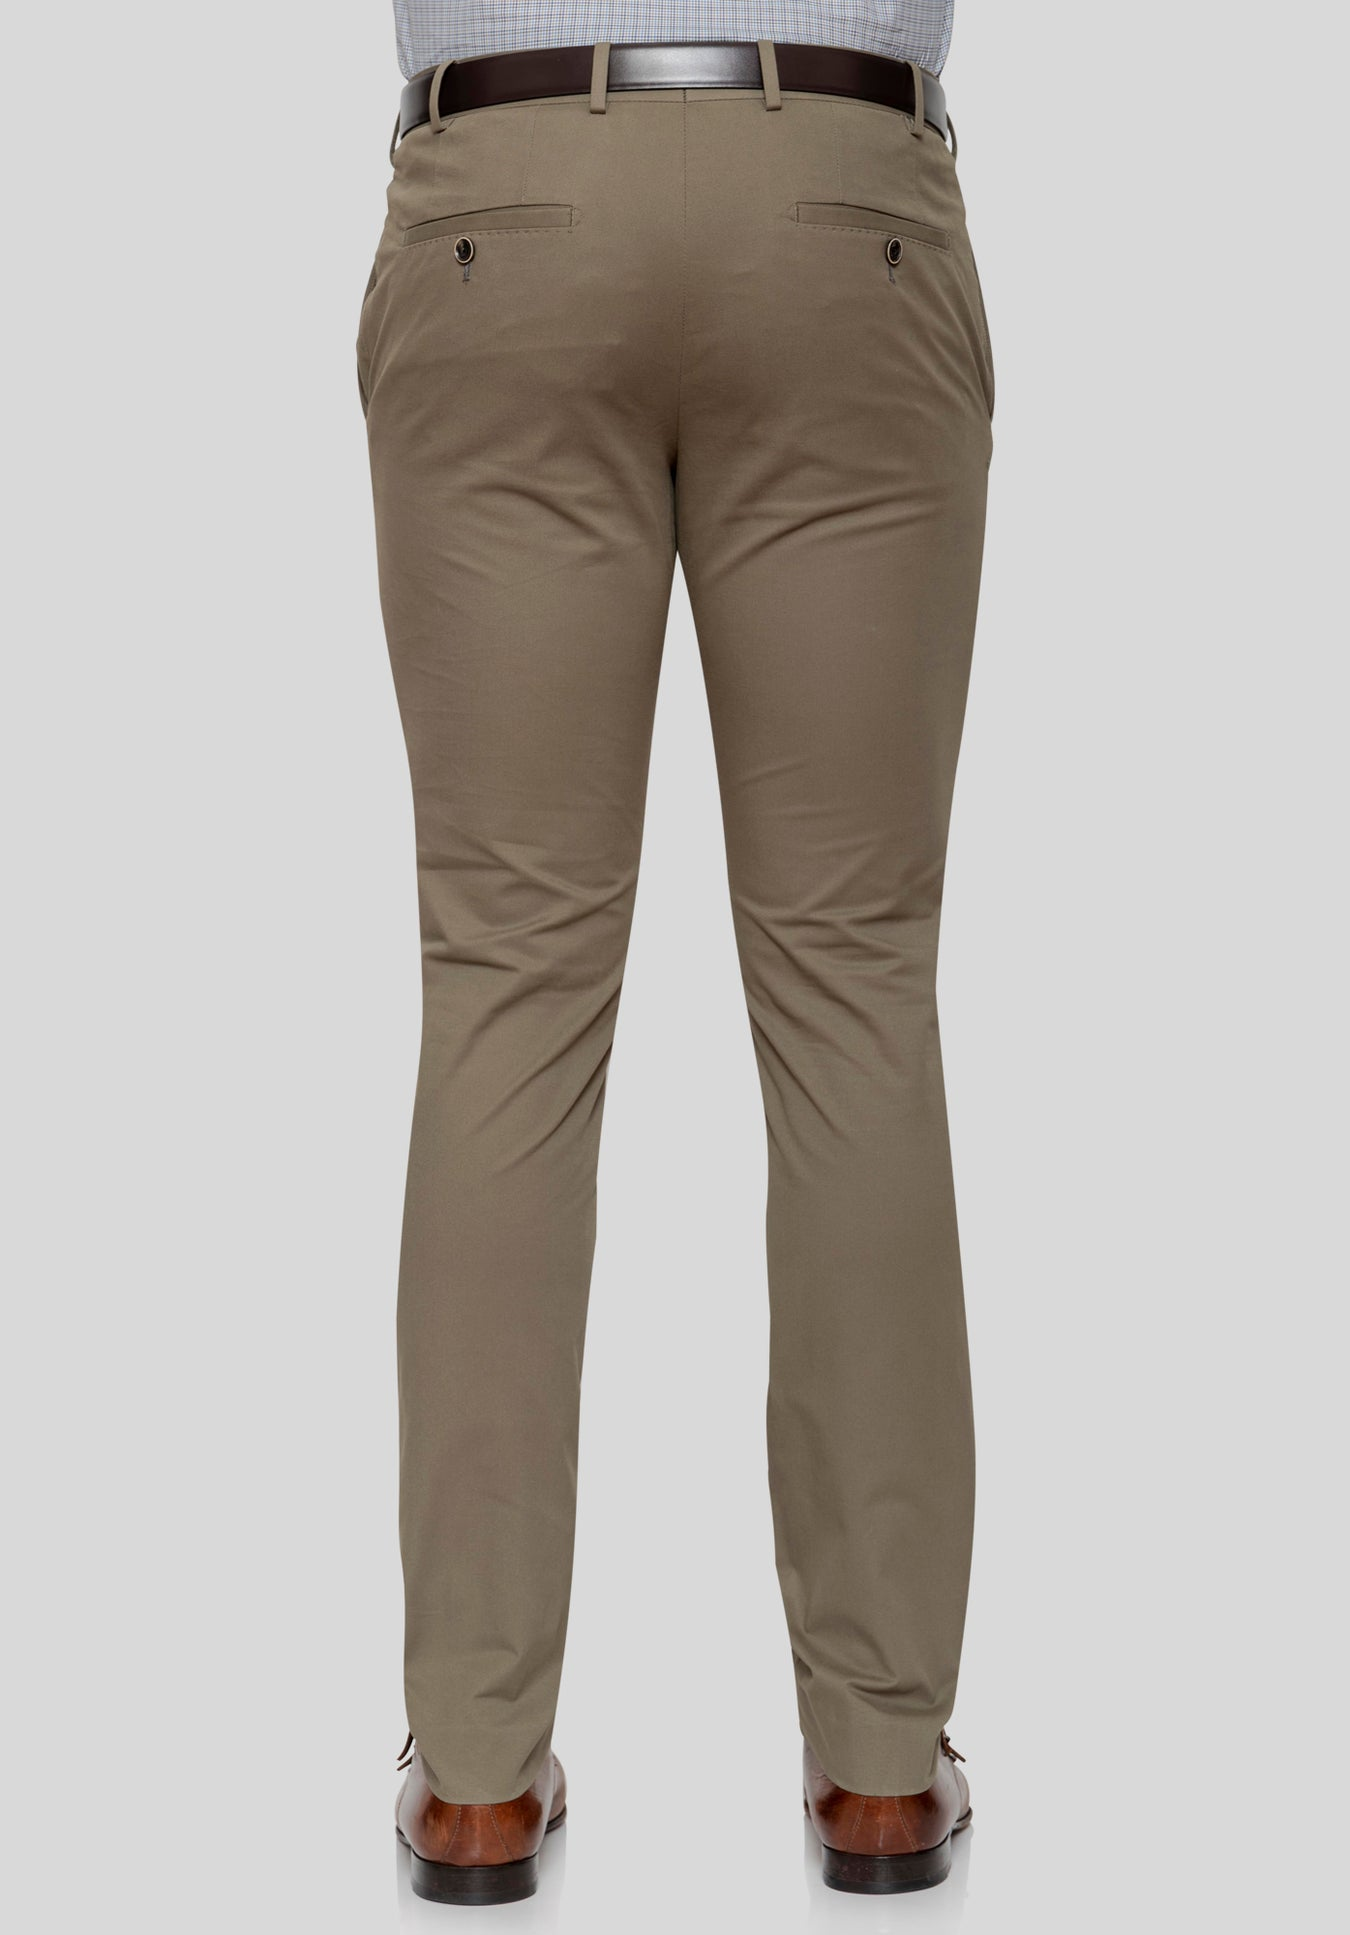 BEACON CHINO FJF975 - Khaki